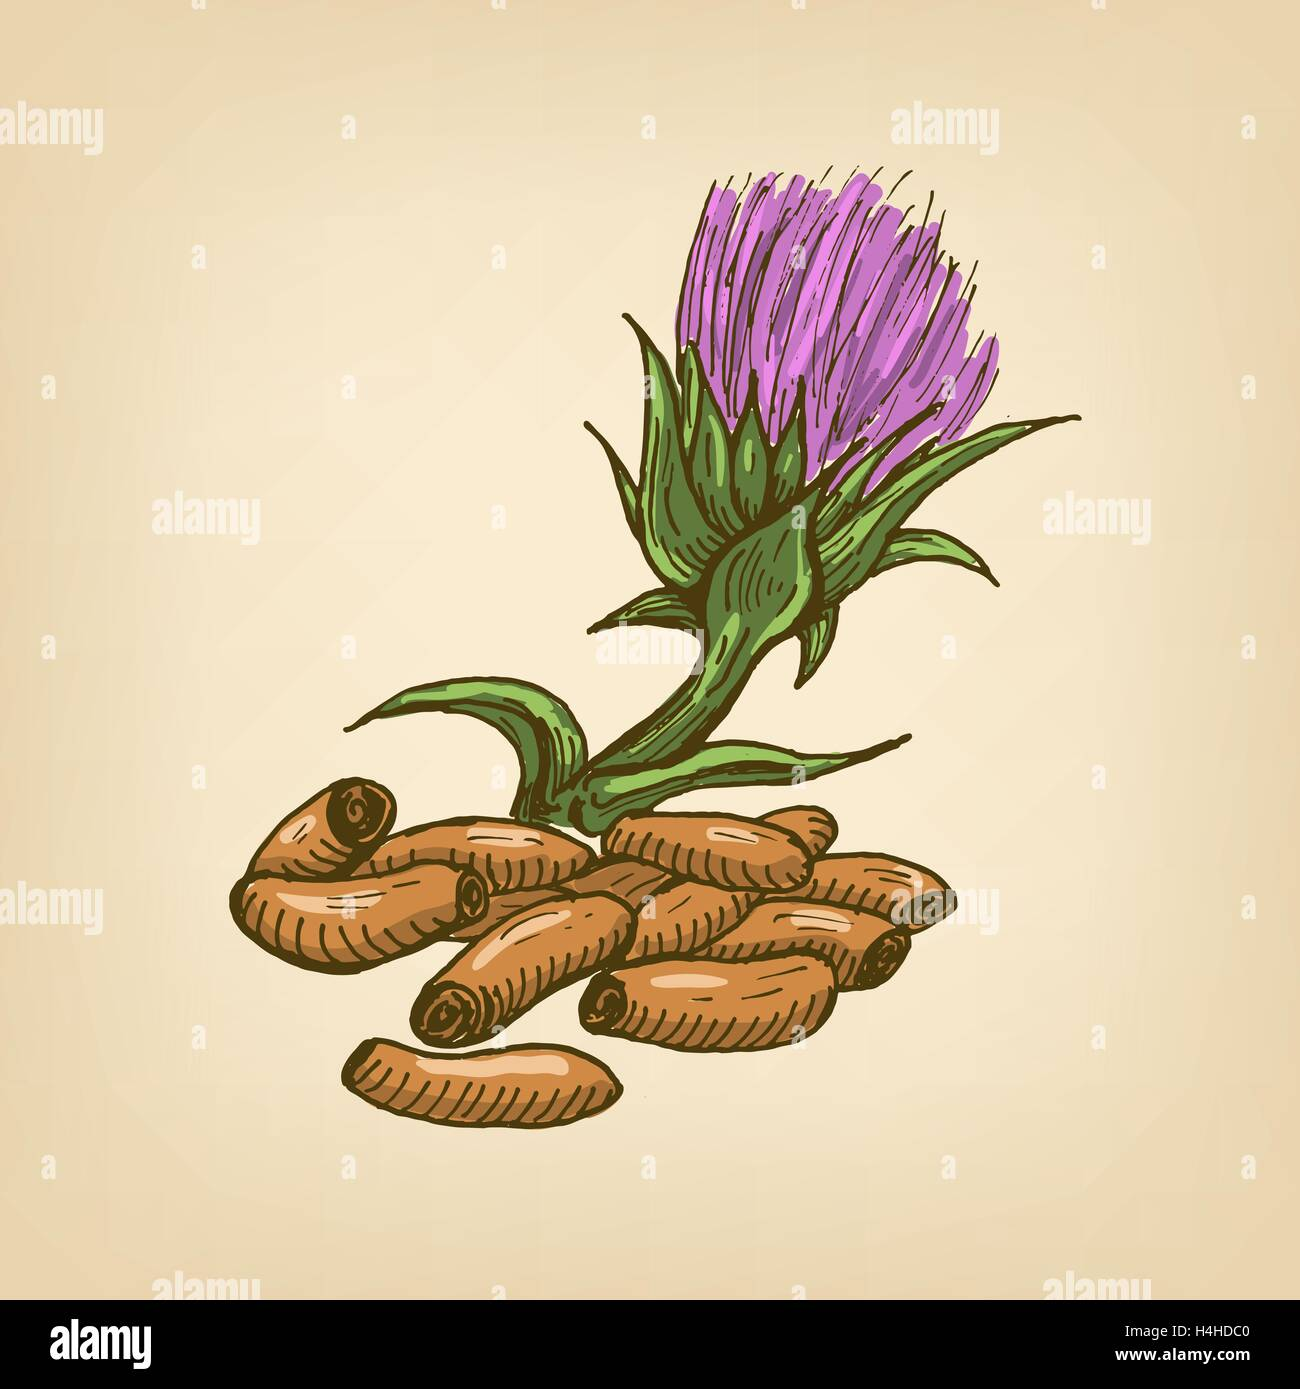 Seeds of a Milk Thistle with flower. Vector illustration - Stock Image